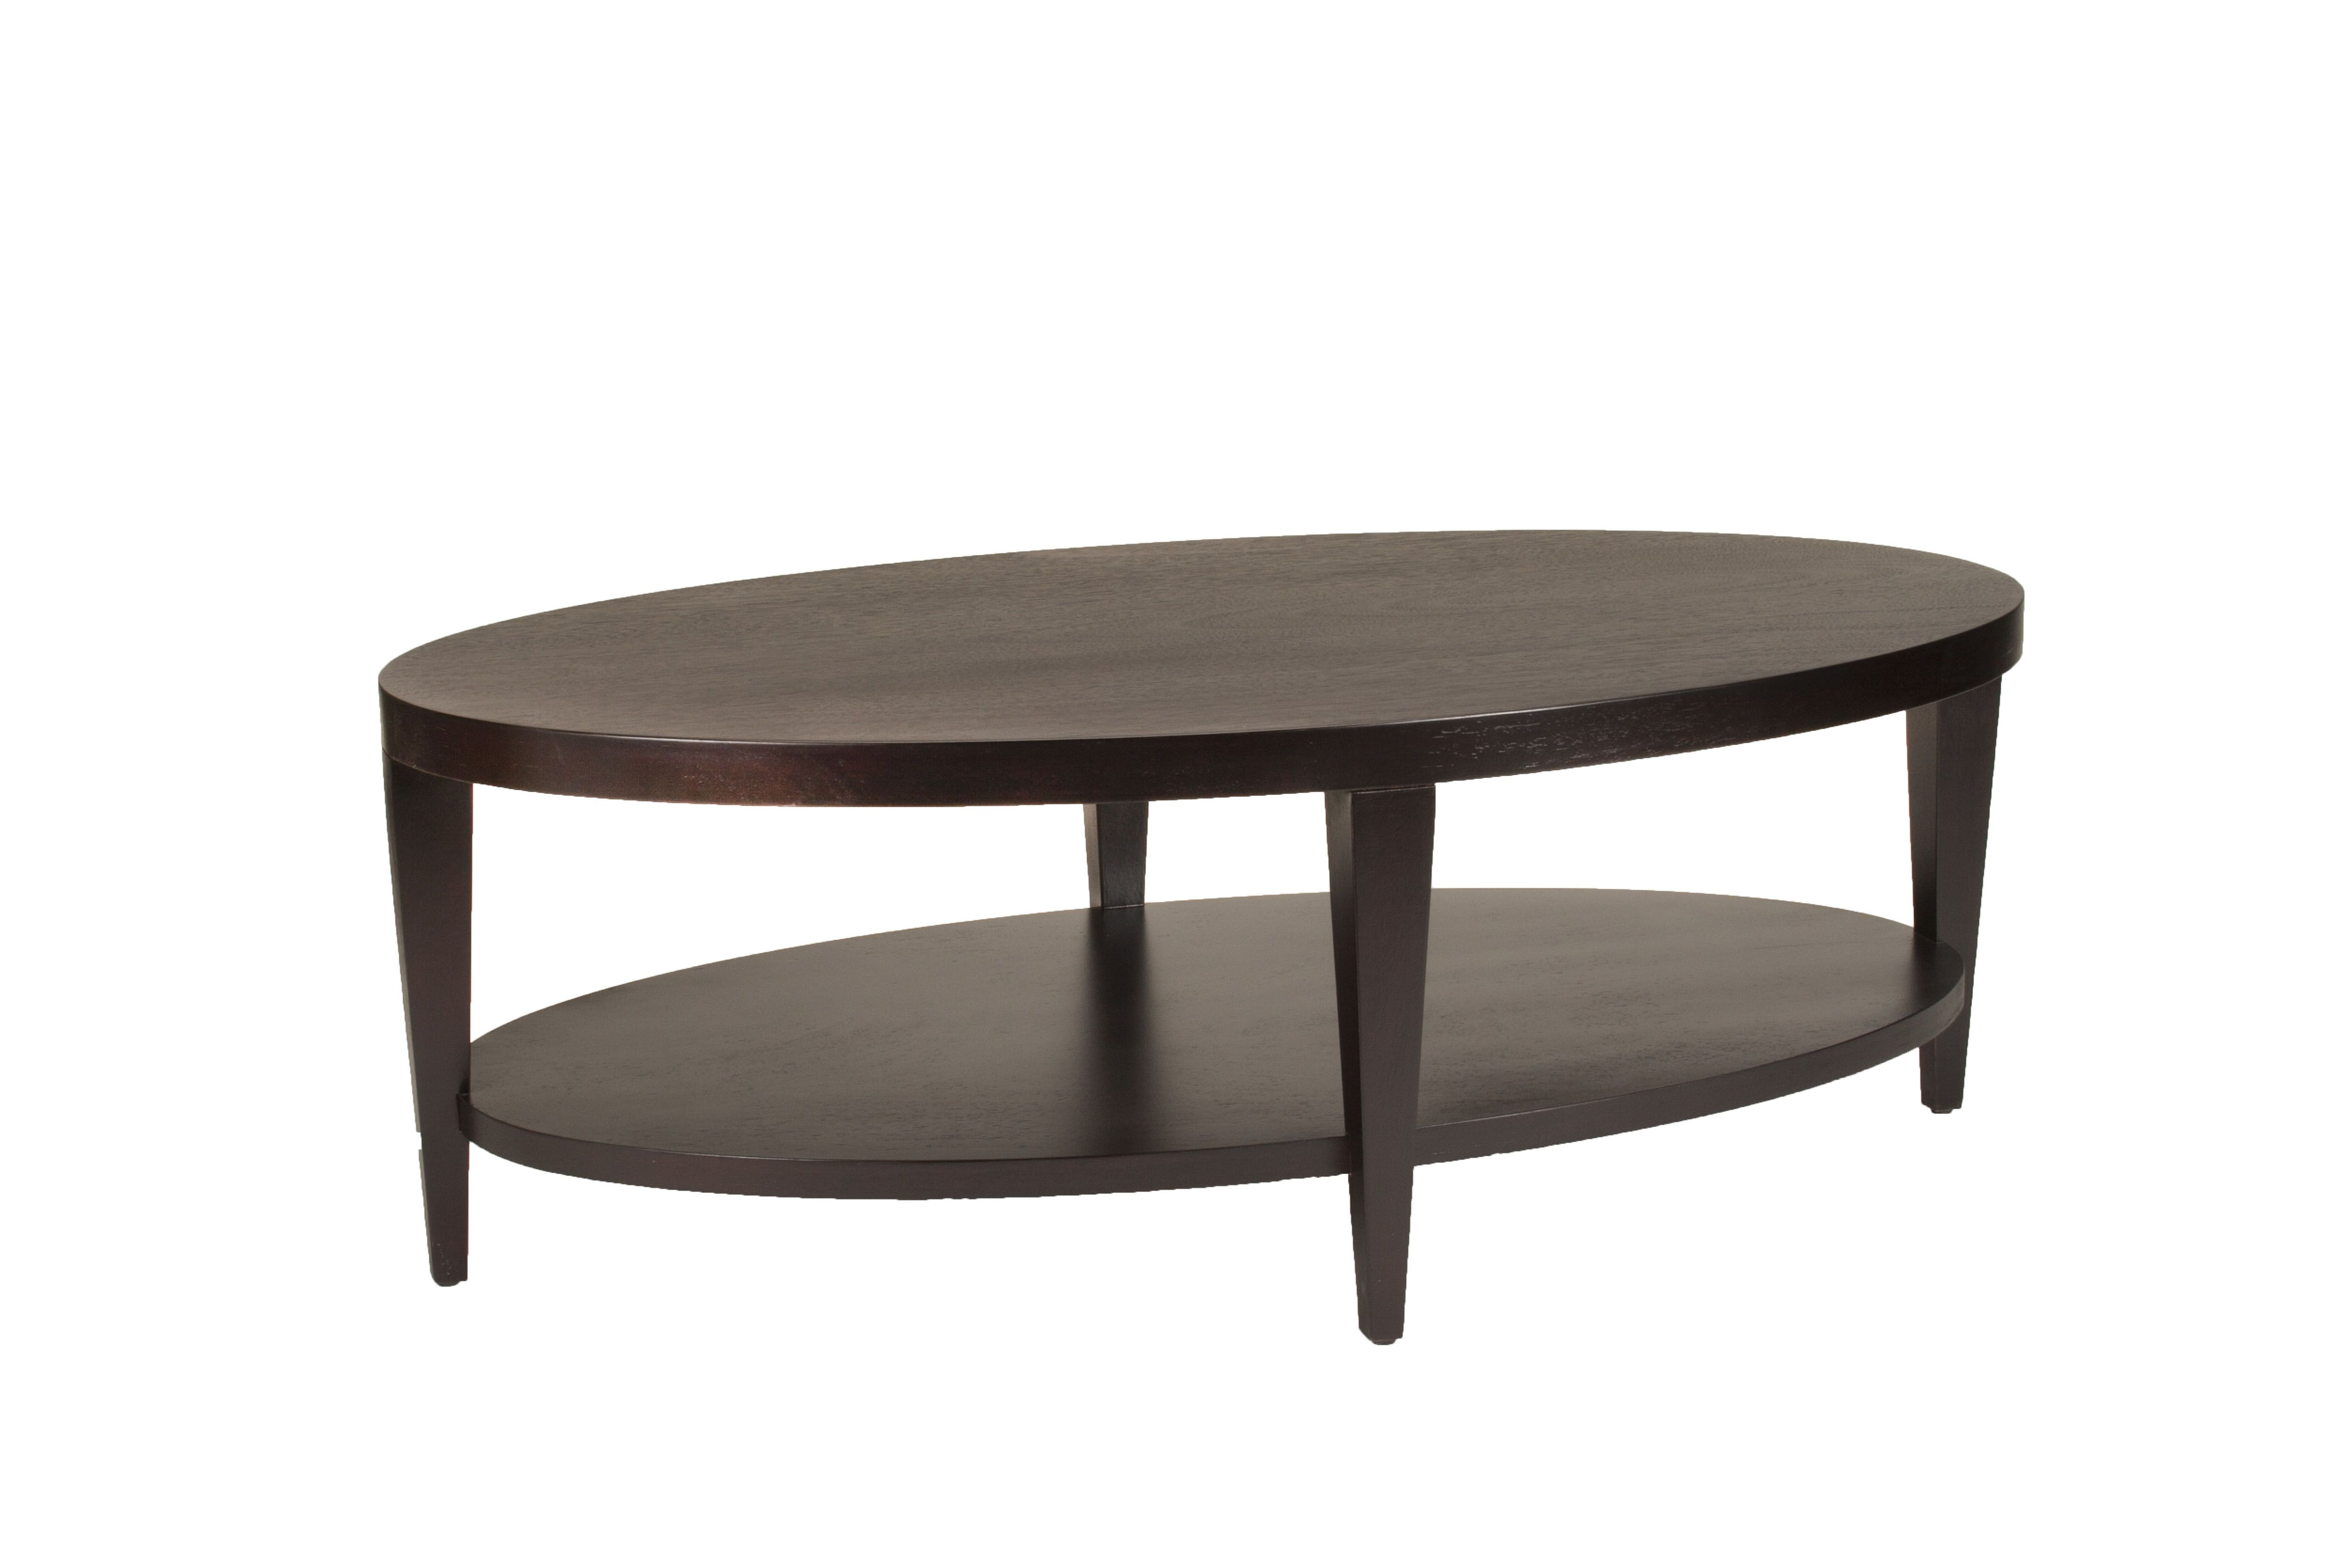 Marla Oval Cocktail Table In An Espresso On Birch Dark Finish Coffee Table Solid Wood Coffee Table Coffee Table Wood [ 3333 x 5000 Pixel ]